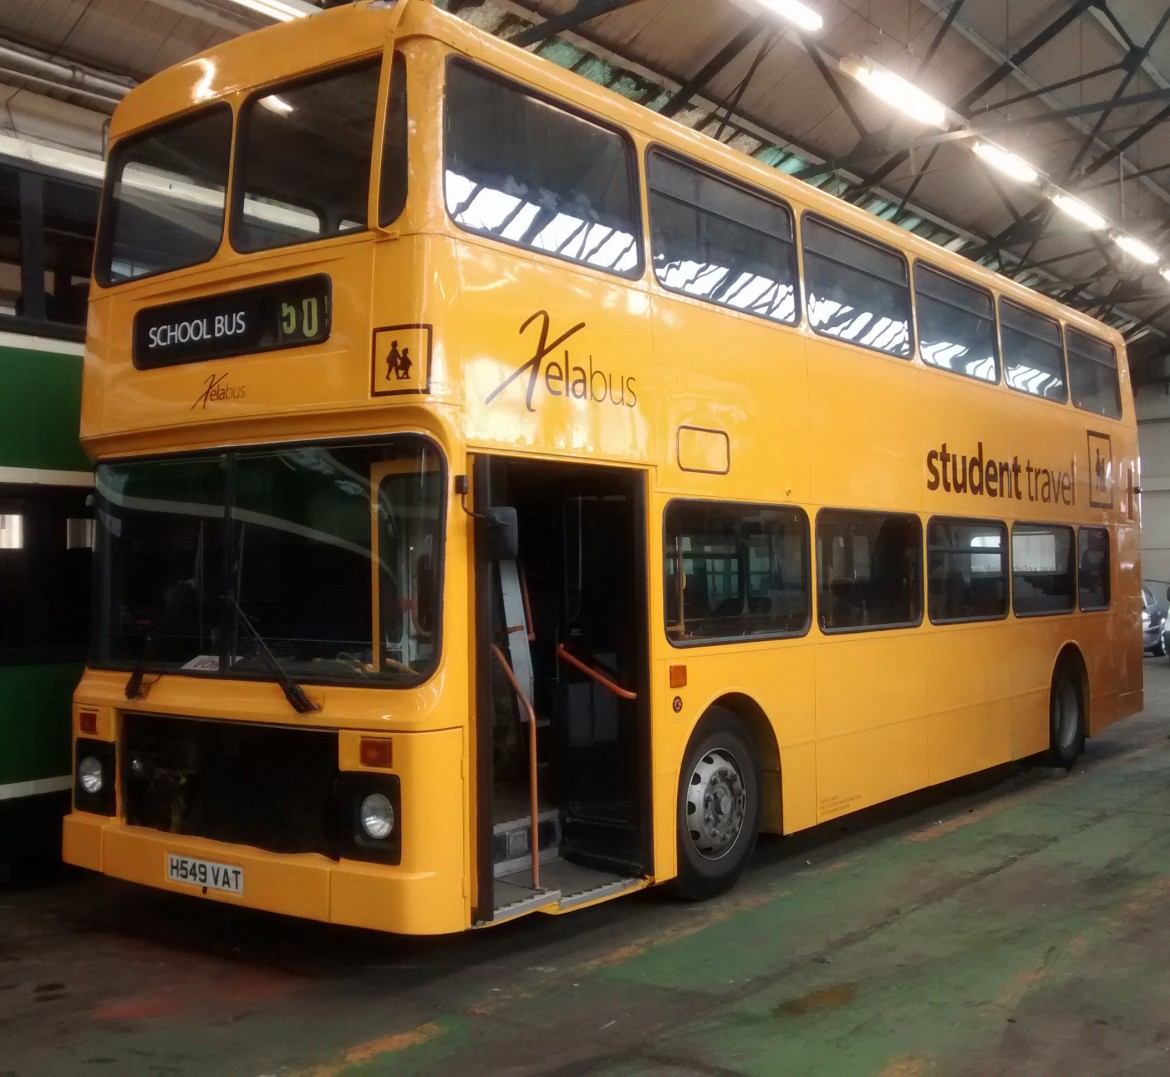 Cut vinyl applied to front, sides and back of bus for Xelabus